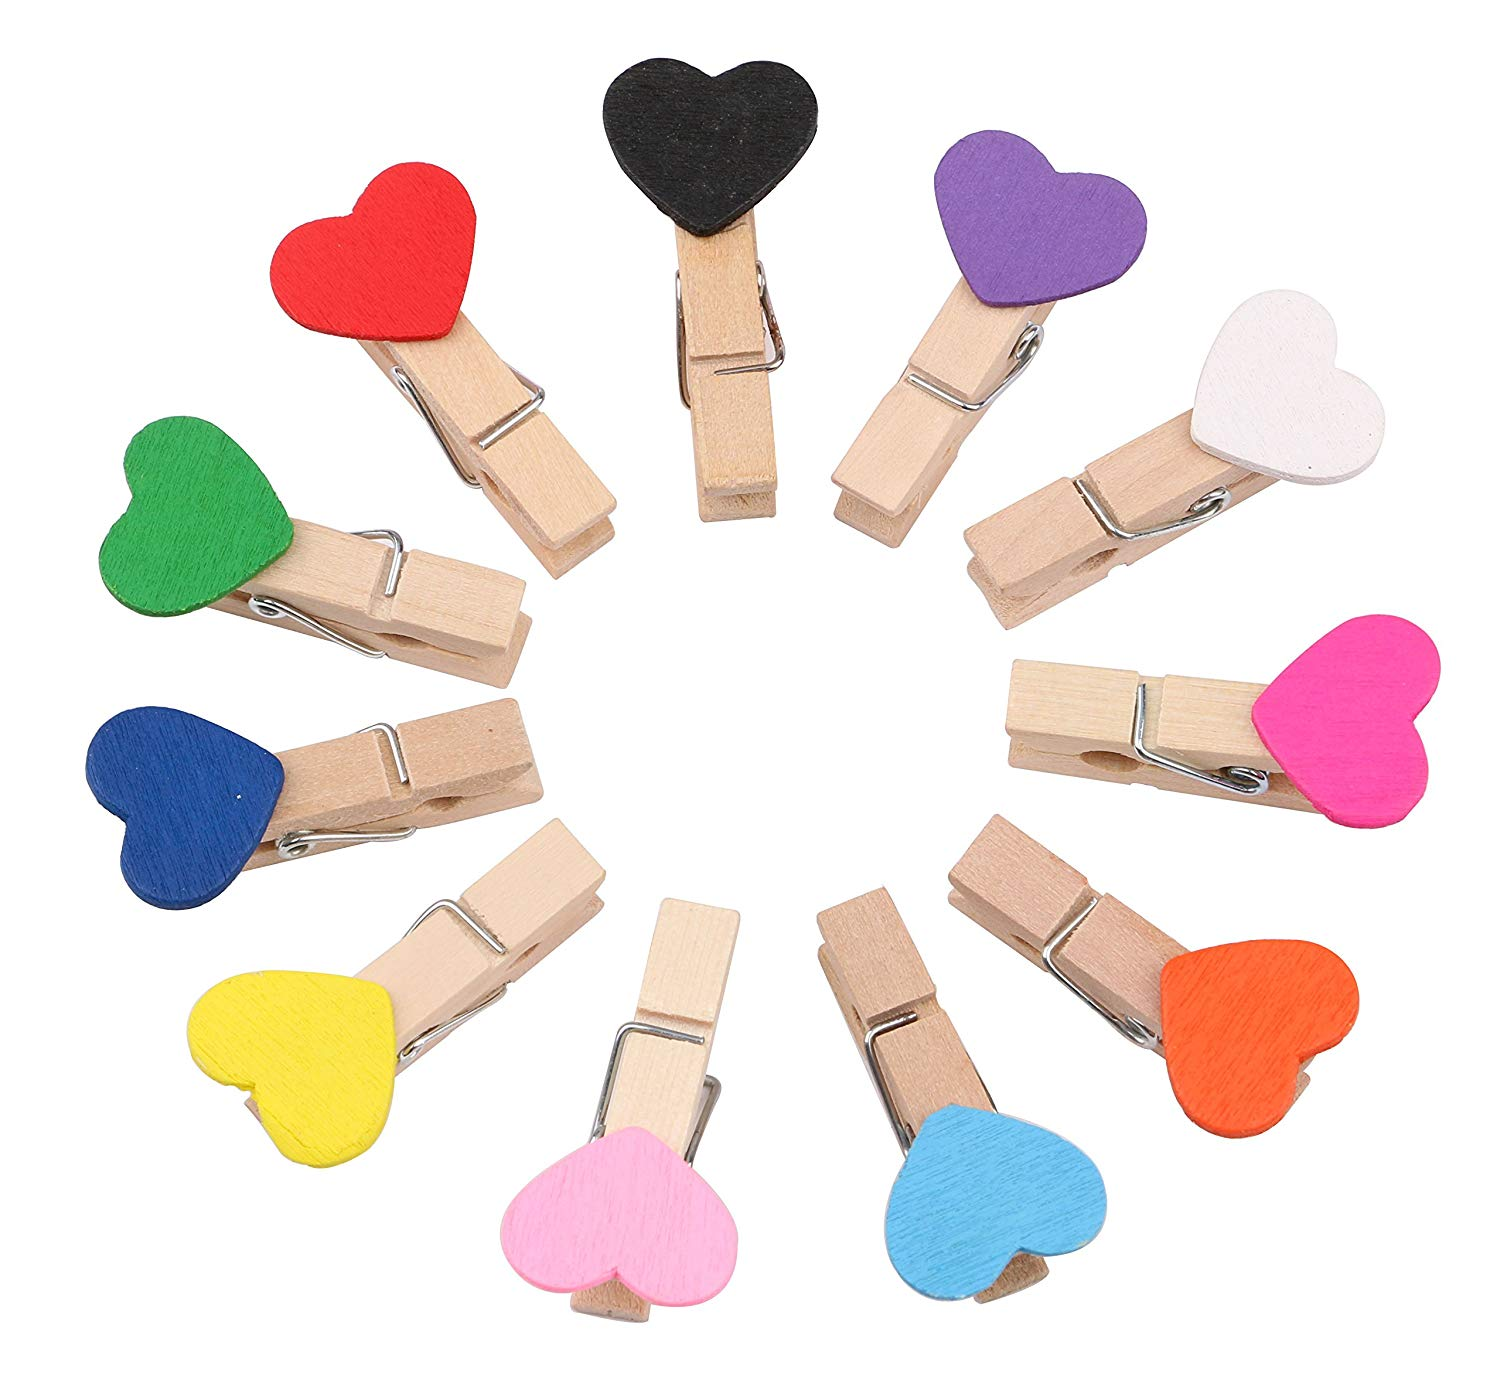 Dedoot Mini Clothespins, Tiny Colored Wooden Heart Cloth Pins Clips Set Pack of 11, Nature Wood Craft Clips Photo Paper Pegs Photo Clips for Hanging Photo Paper pegs Picture - 11 colors